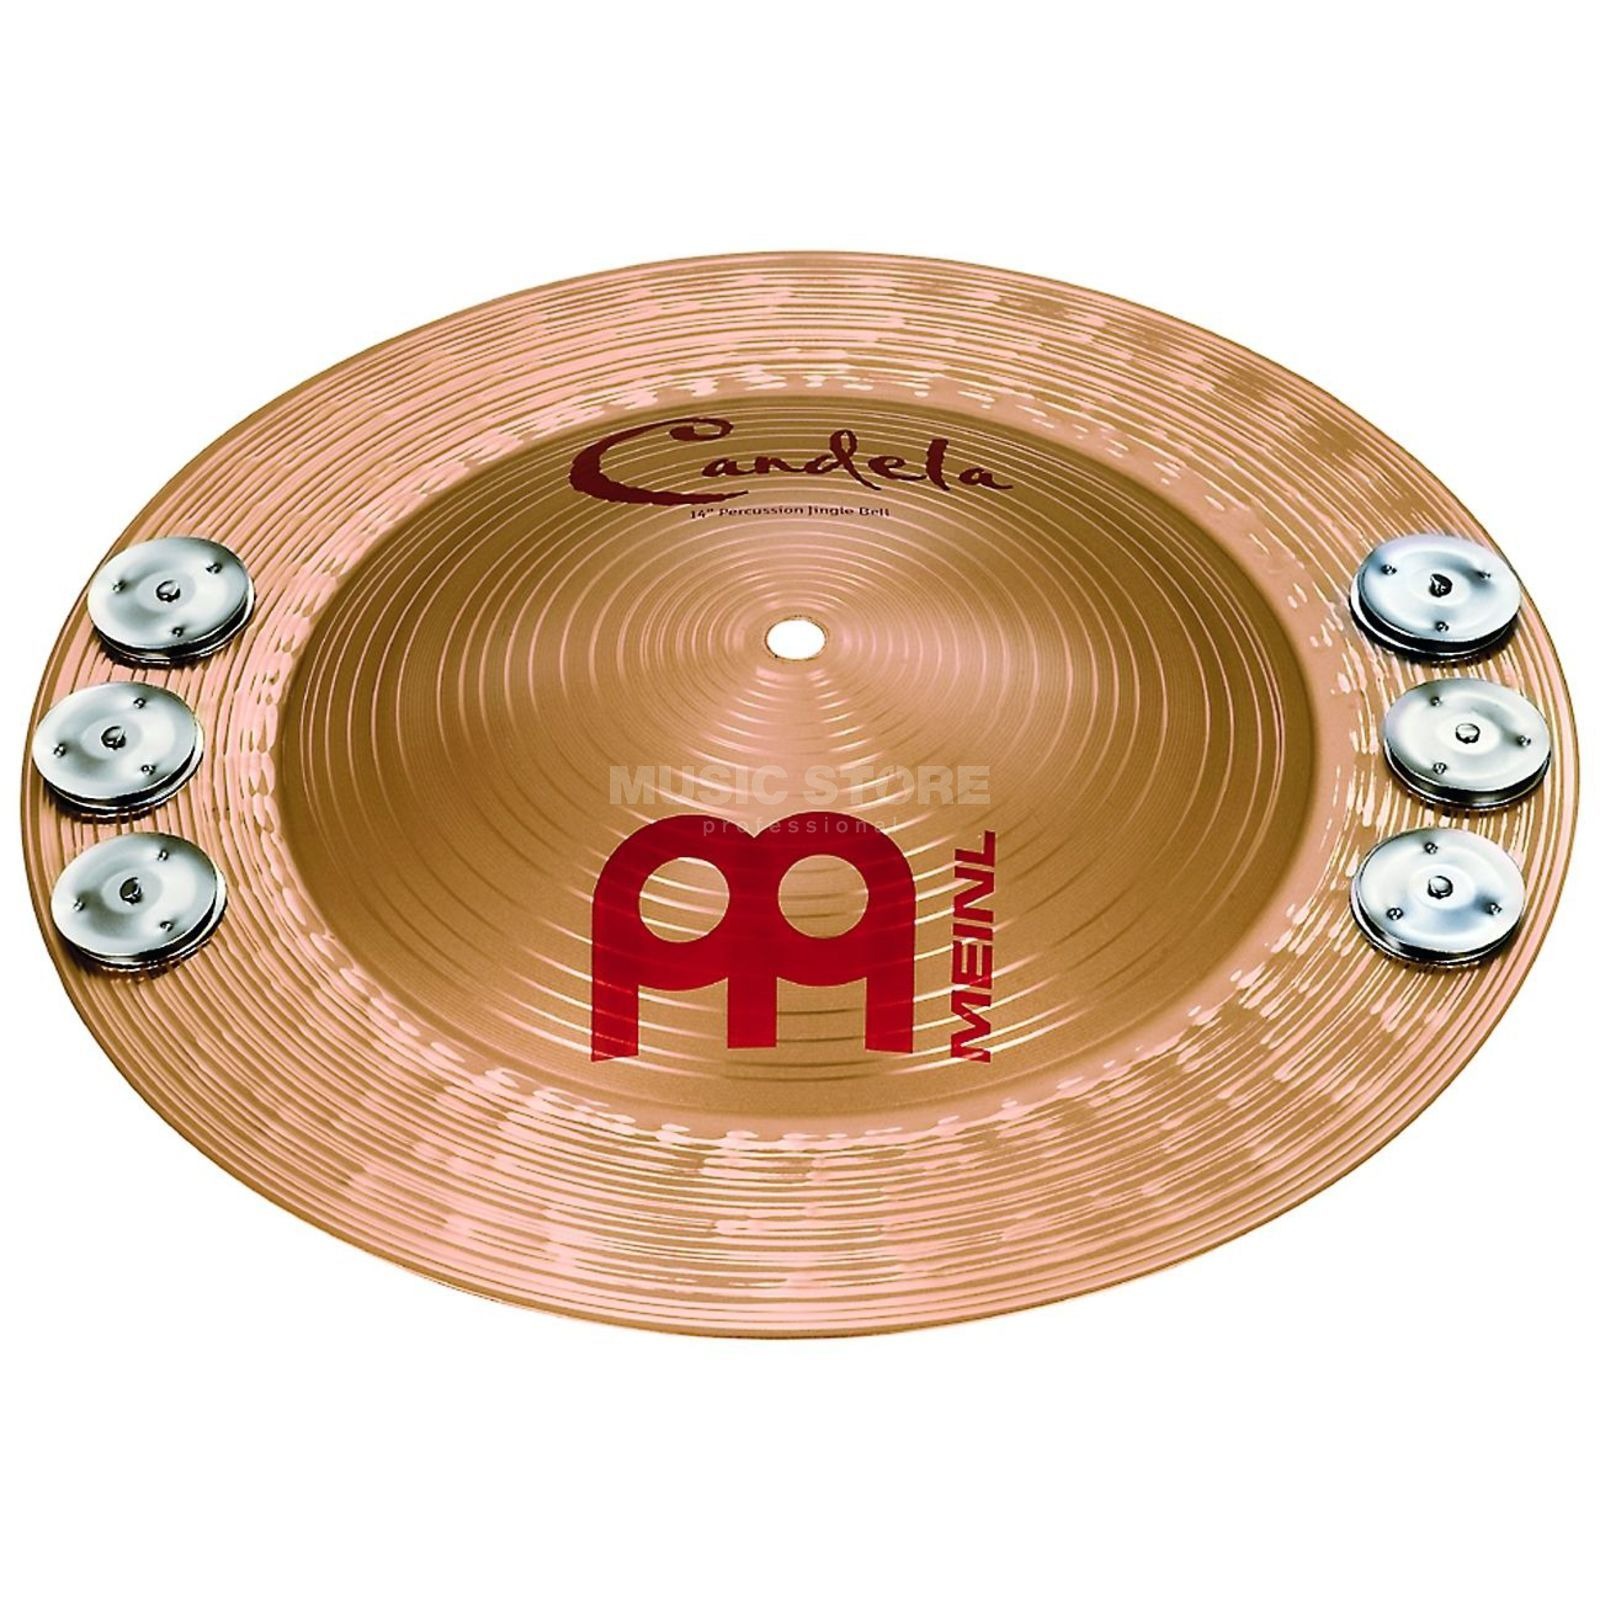 "Meinl Candela JingleBell 14"", CA14PJB, Percussion Cymbal Product Image"